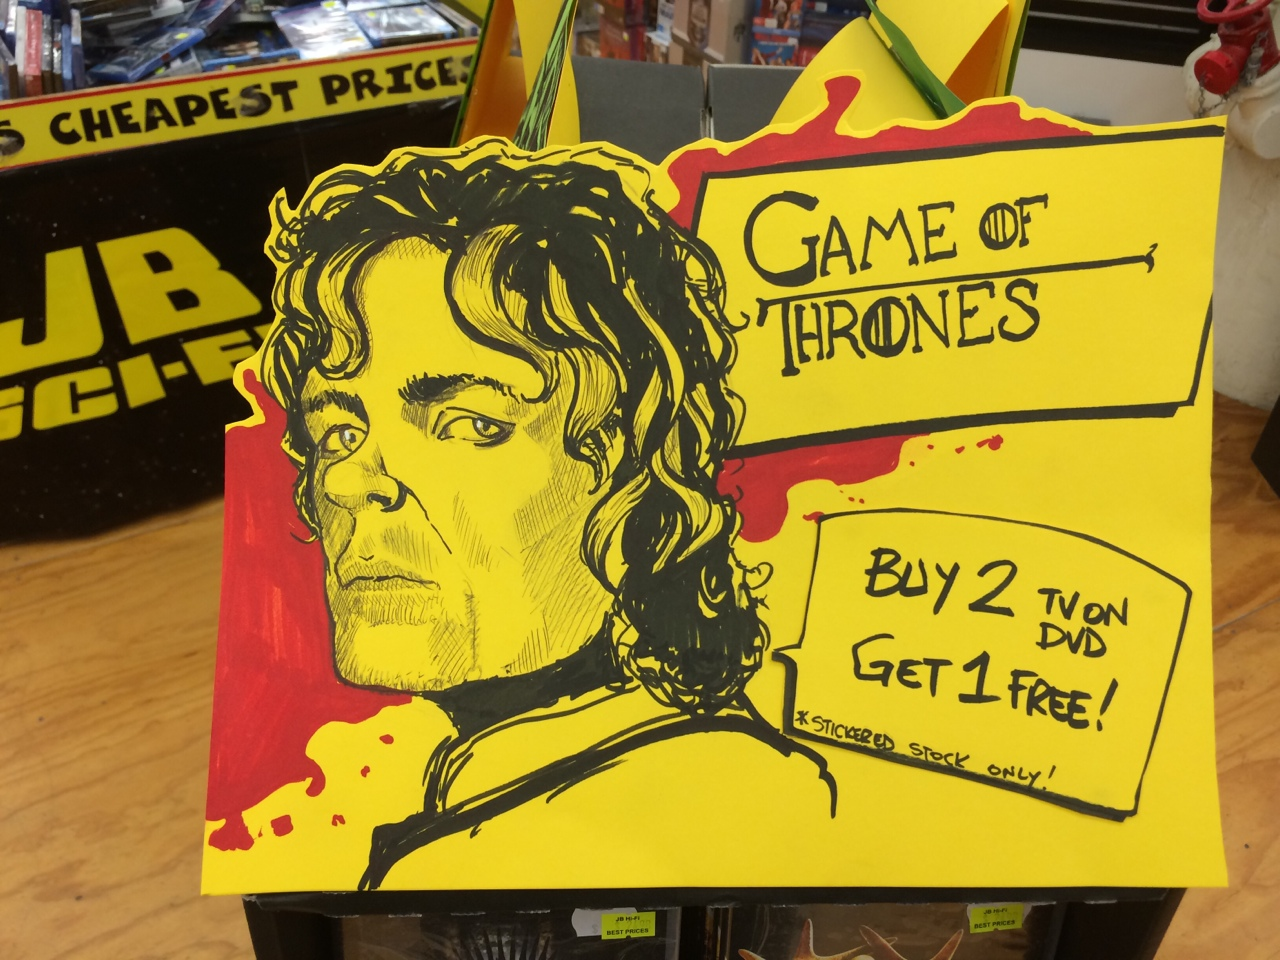 92423181851 - quick game of thrones sign i knocked up at work.jpg